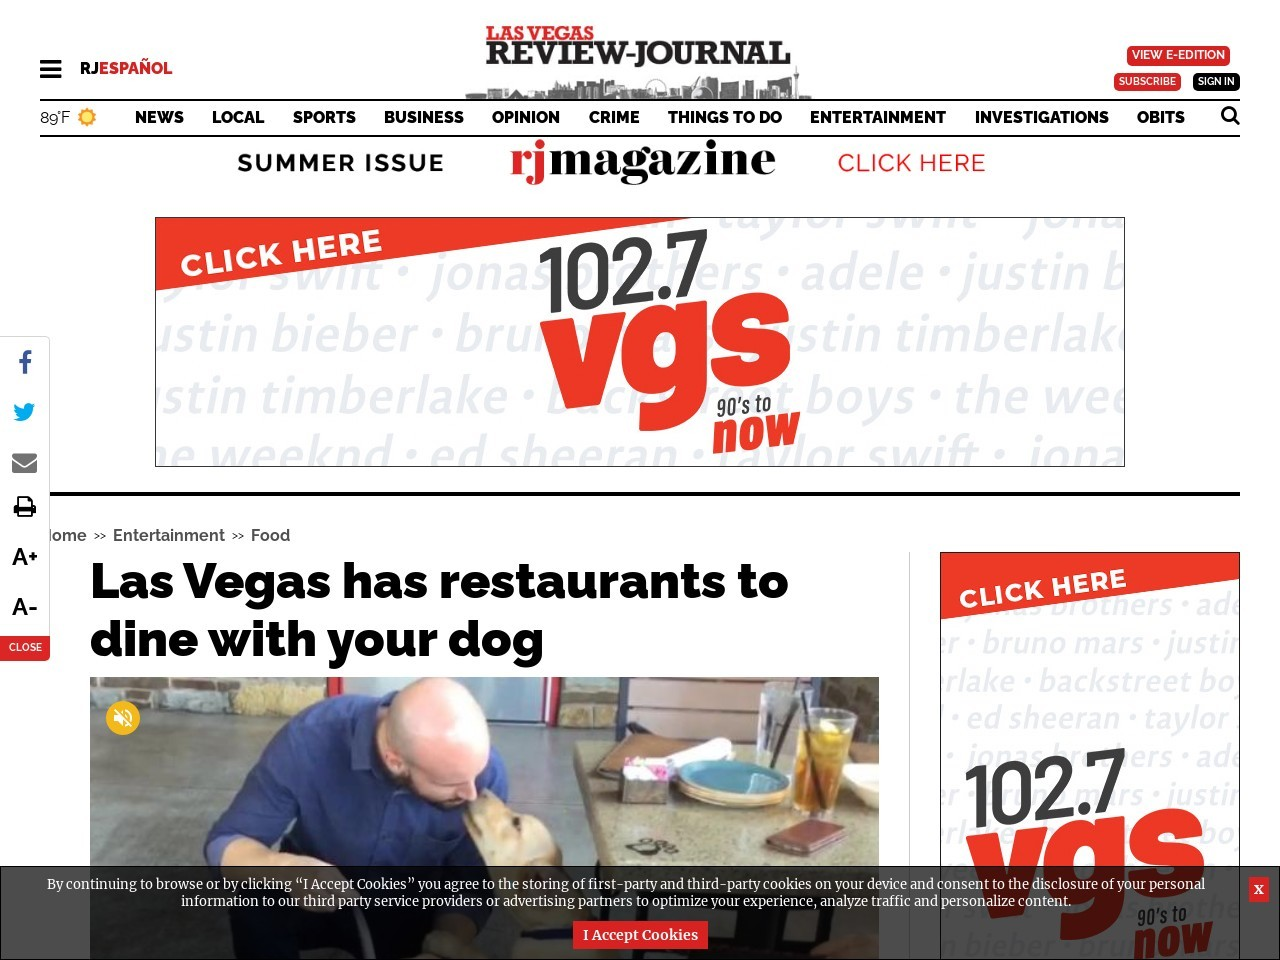 Las Vegas has restaurants to dine with your dog